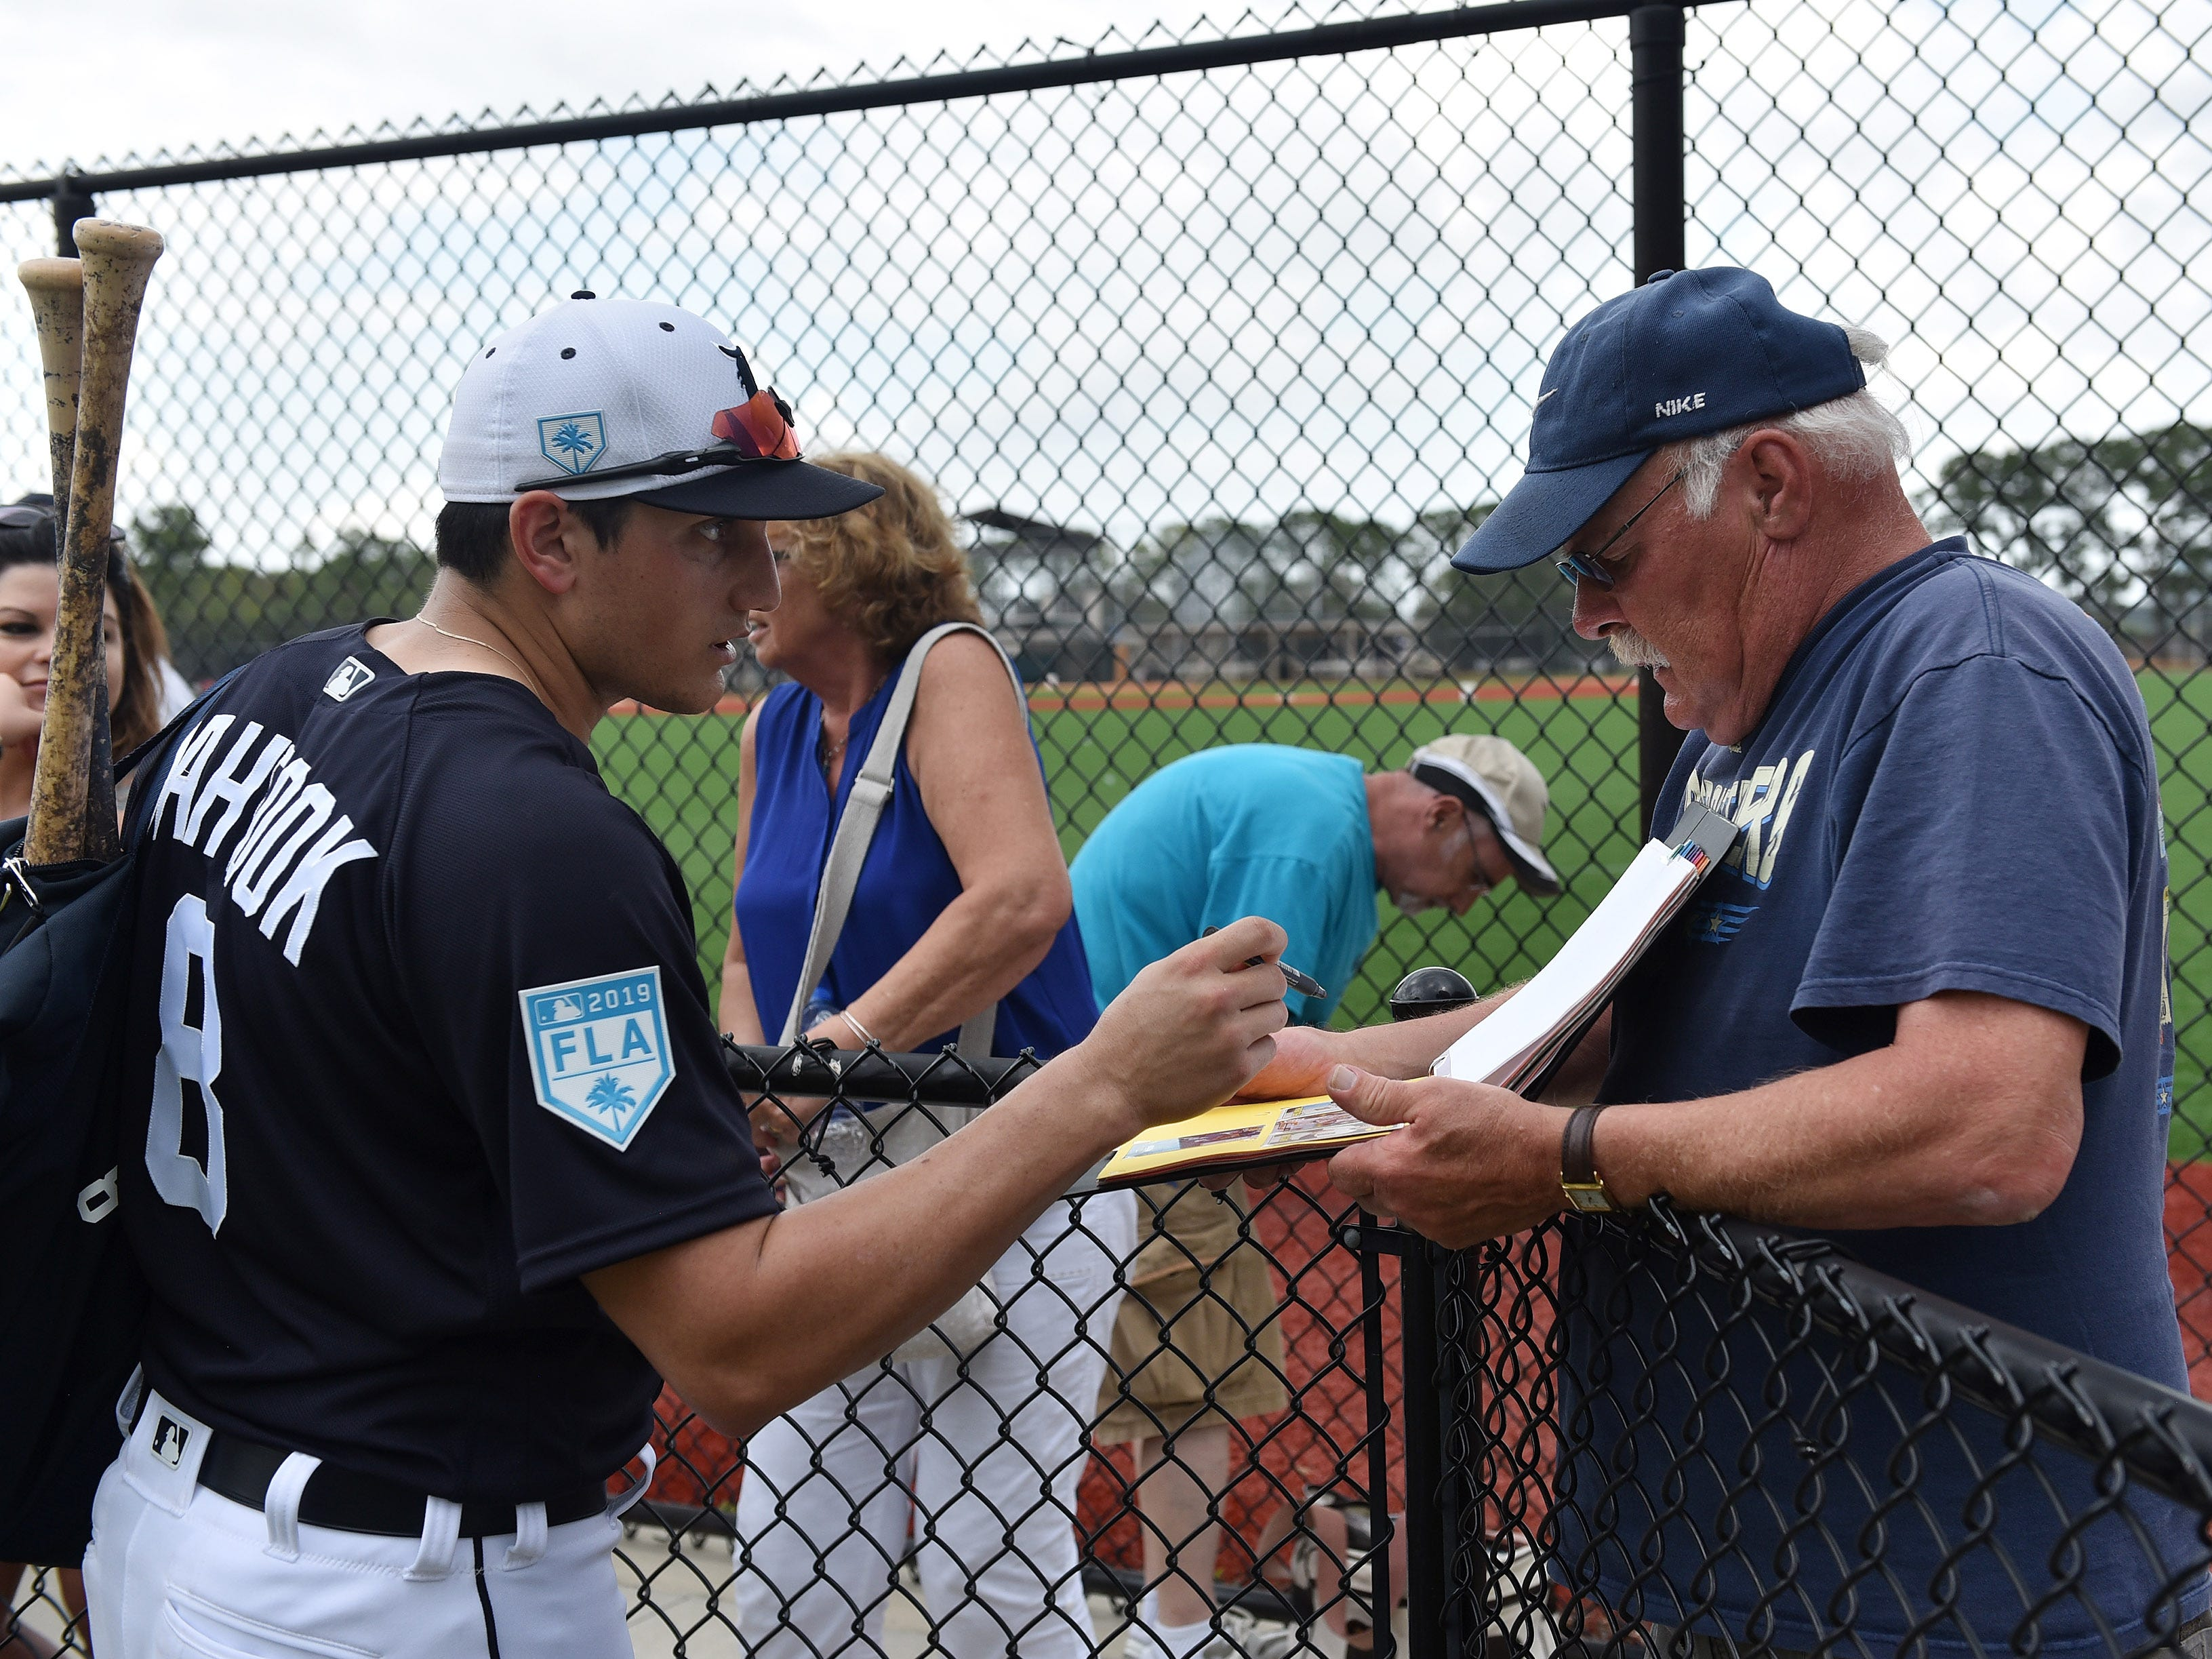 Tigers' Mikie Mahtook talks with Tom Lefchick of Warren and signs for him after the workout.